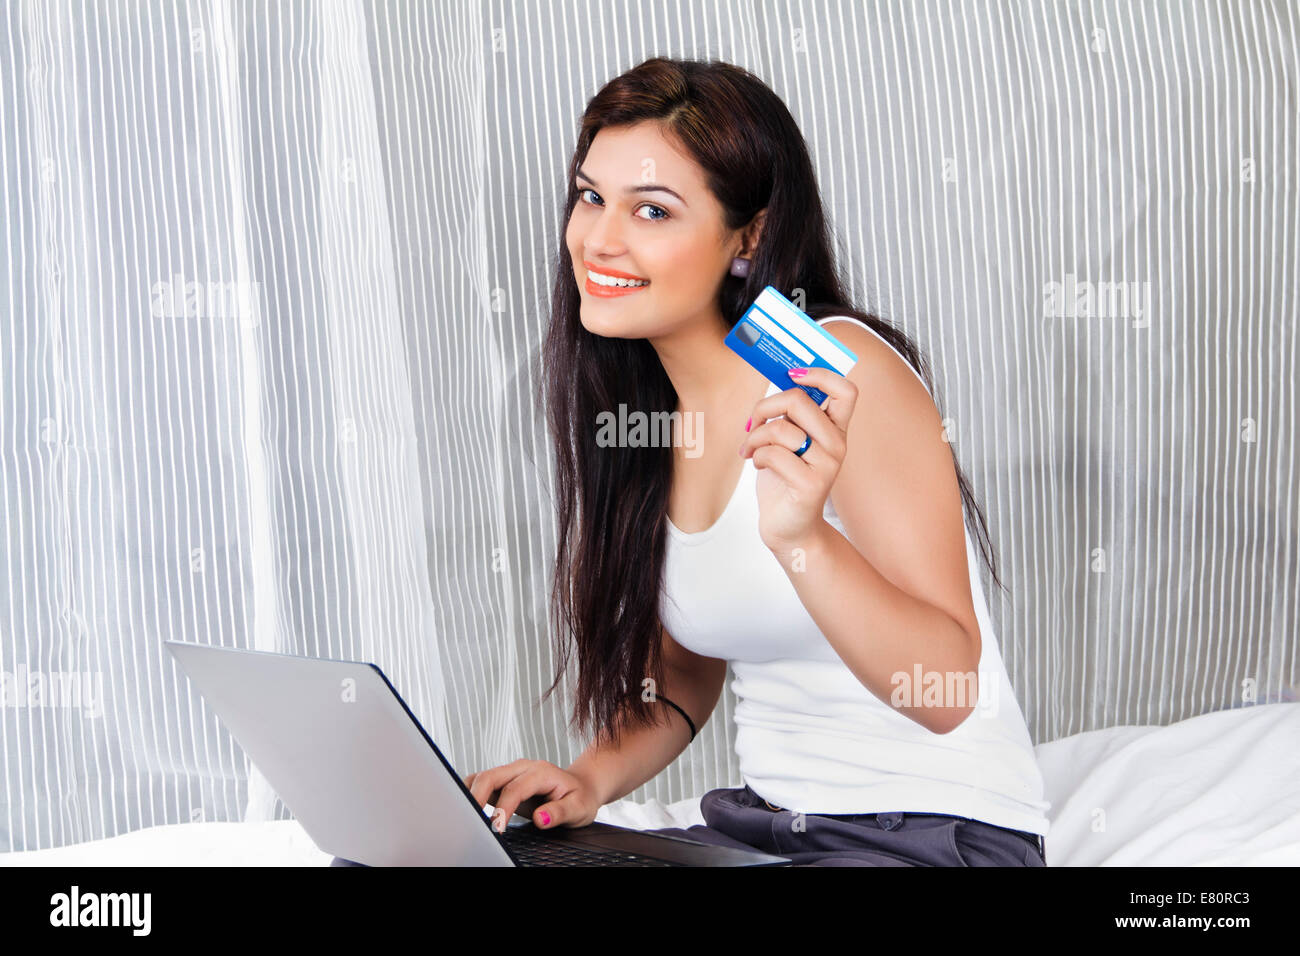 indian Beautiful Ladies online shopping with laptop - Stock Image